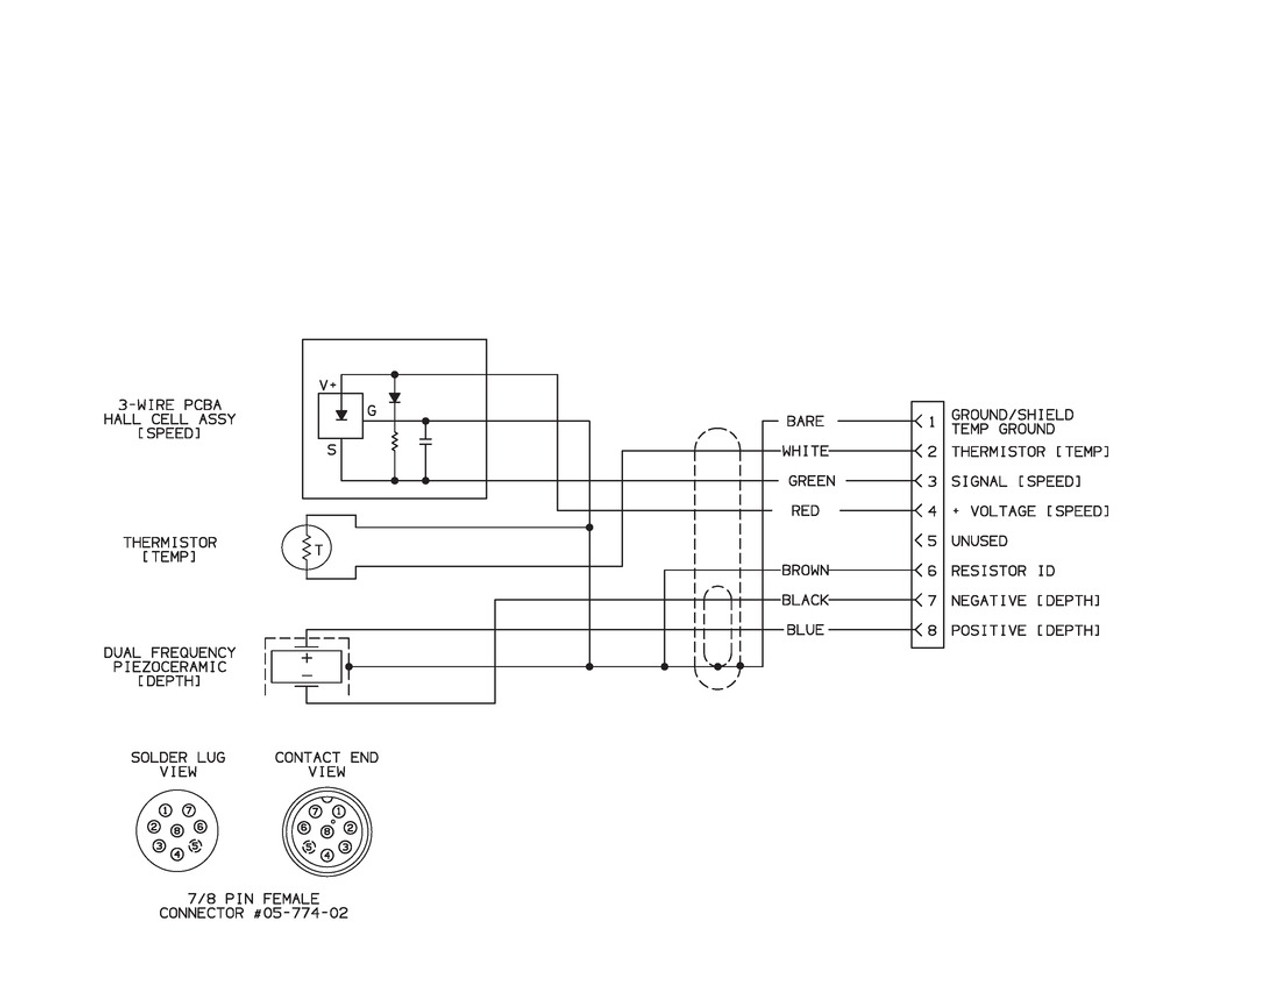 Thermistor Wiring Diagram Dual - Wiring Diagram Mega on acoustic transducer diagram, transducer wire color code, transducer block diagram, oxygen sensor diagram, transducer parts diagram, transducer cover, maf sensor diagram, chevy v6 o2 sensor diagram, transducer assembly diagram, transducer cable, gm o2 sensor diagram, map sensor diagram, 3 wire pressure sensor circuit diagram, transducer installation,